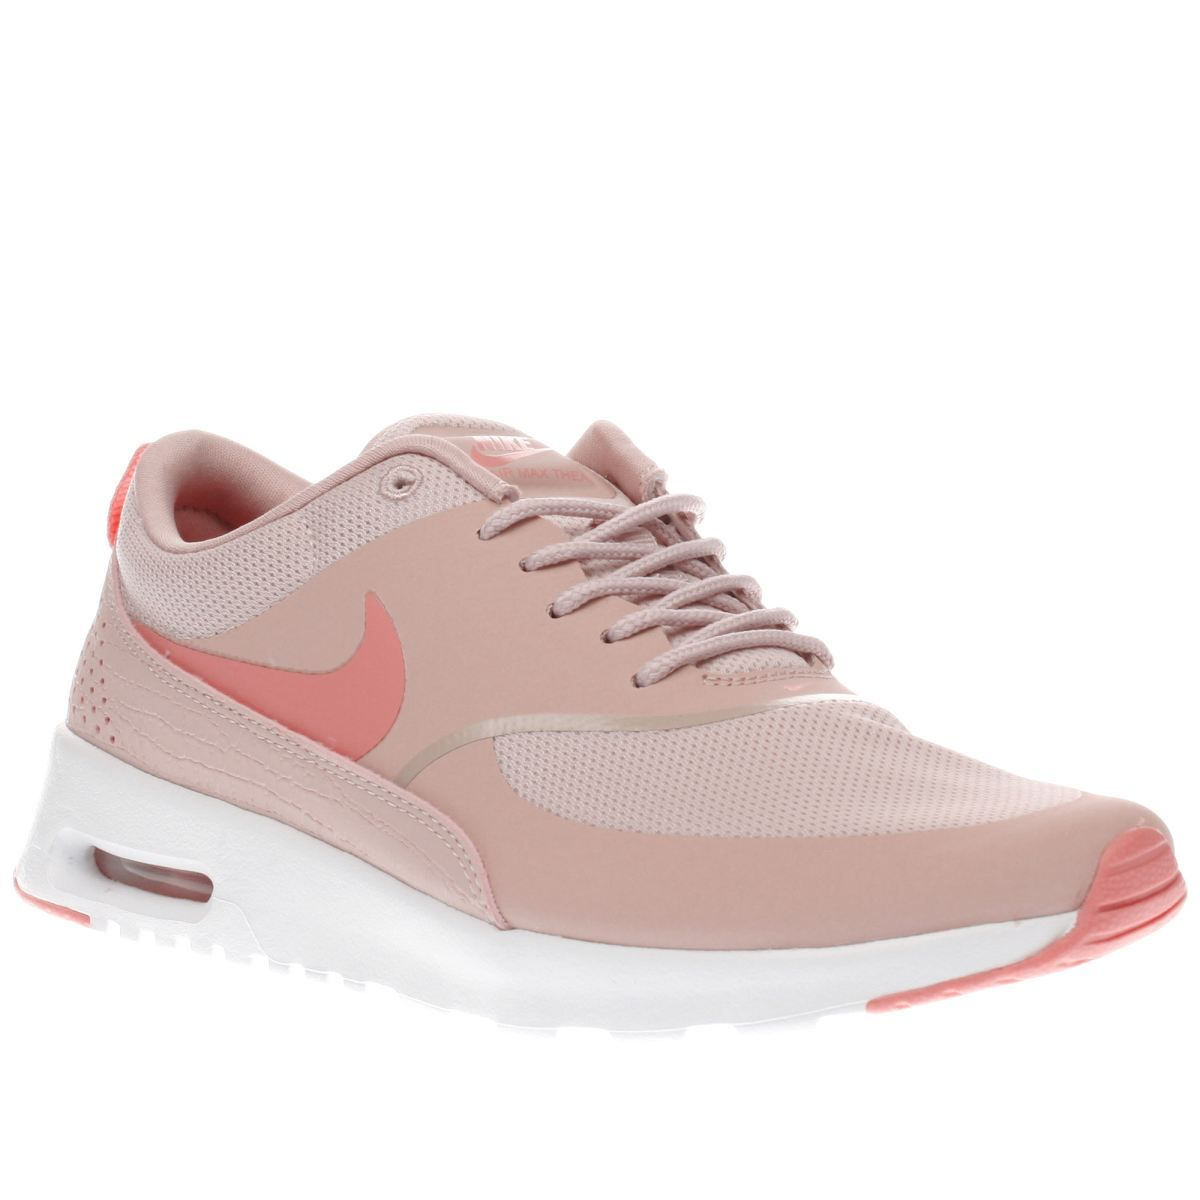 Nike Air Max Thea Womens Light Pink